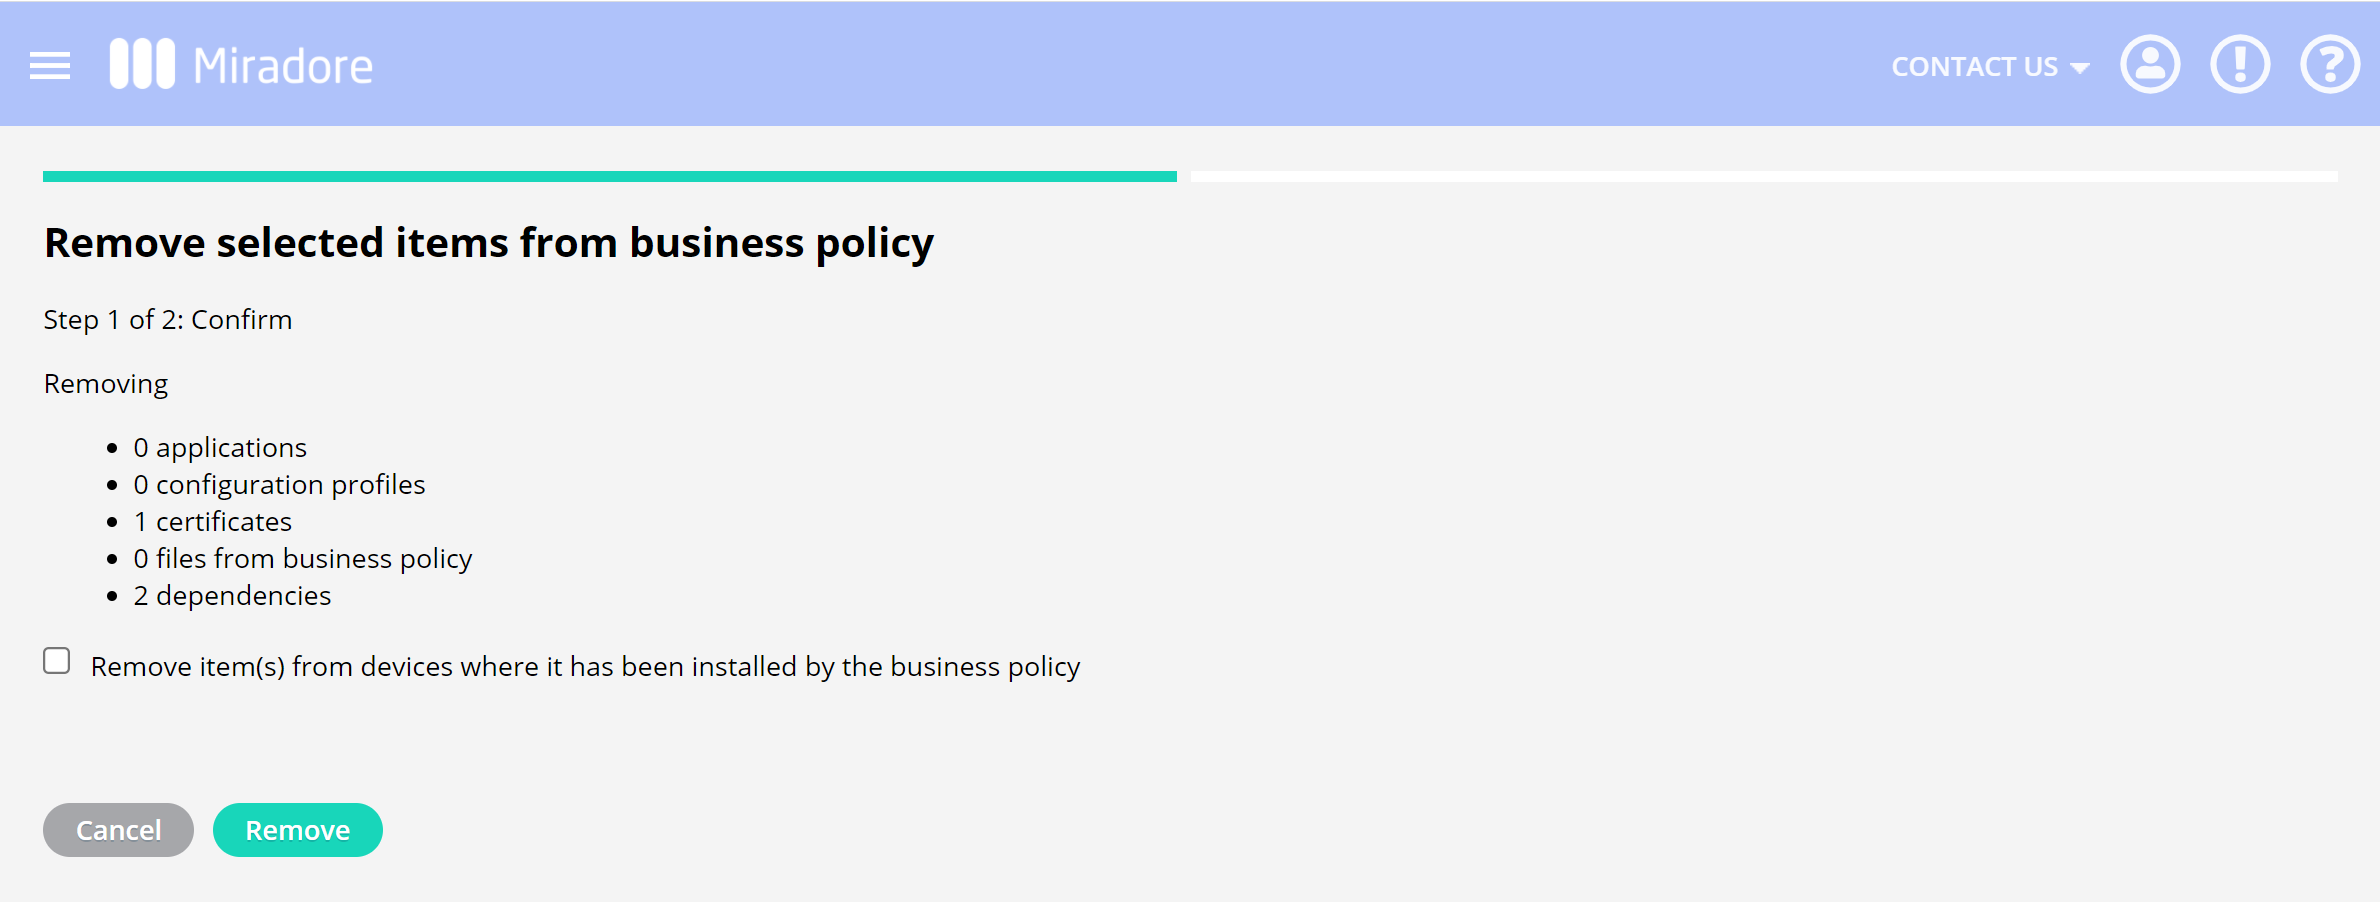 remove items wizard in business policy